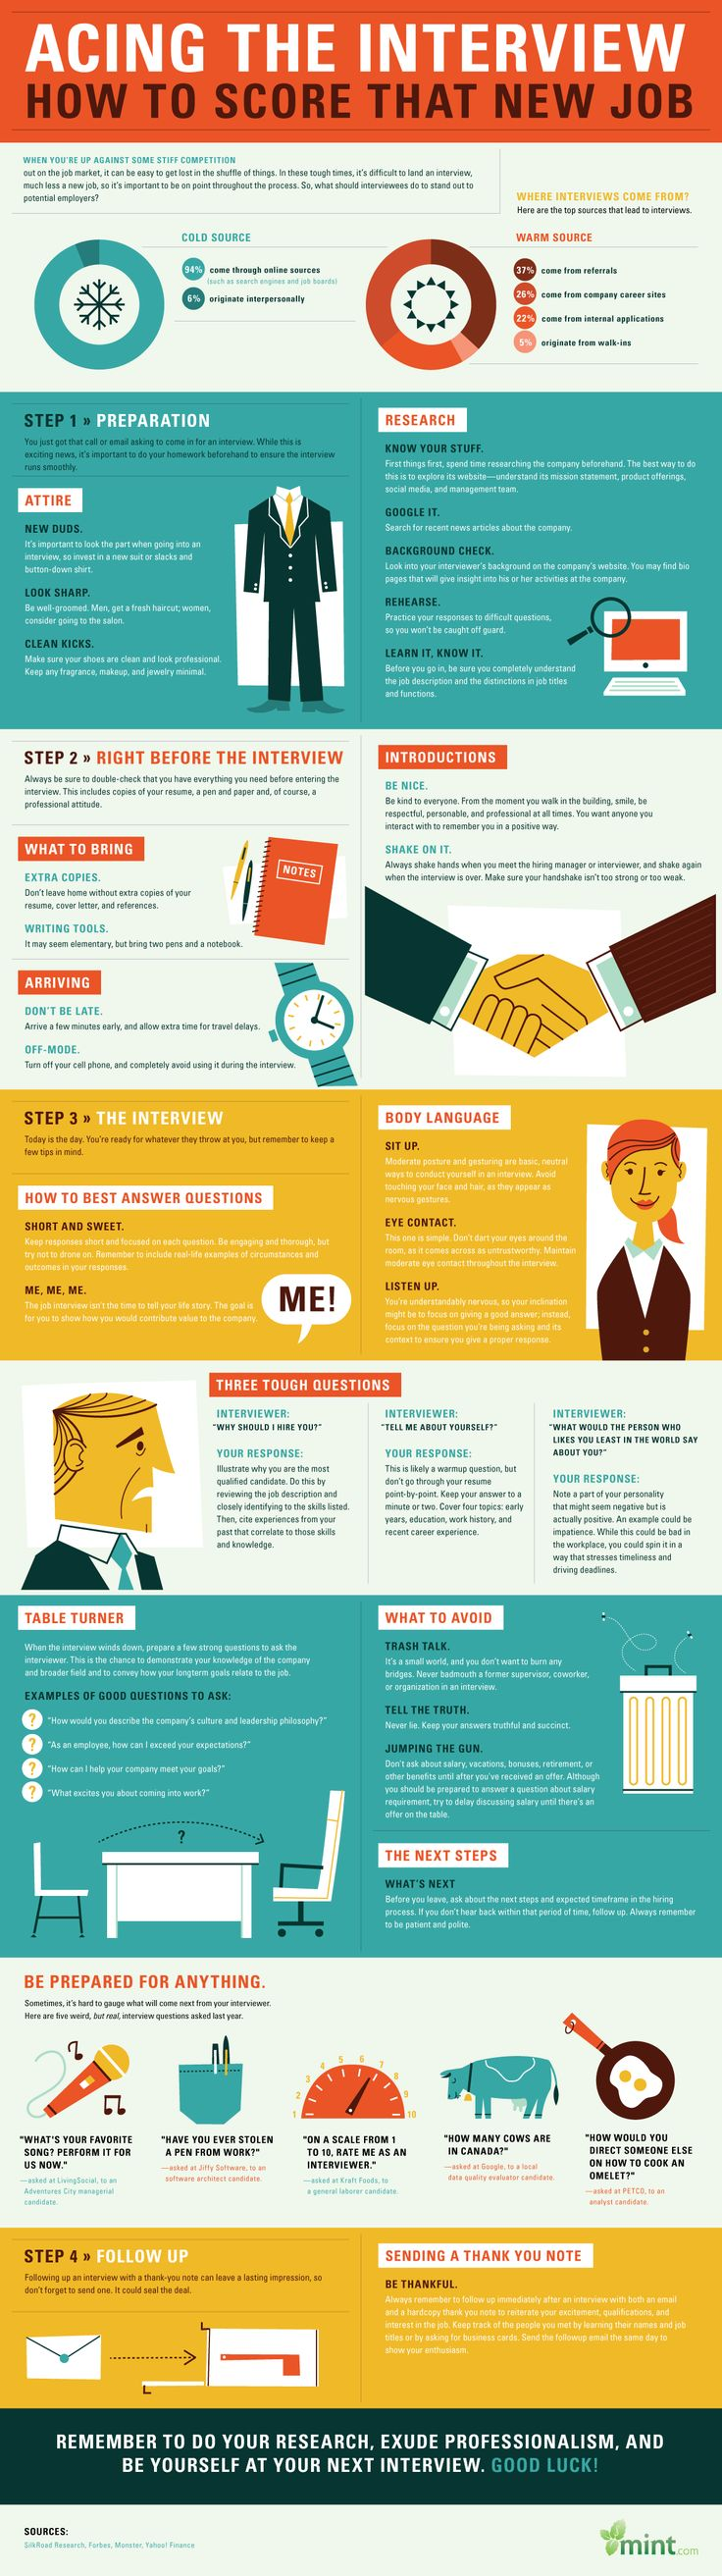 best images about ace your next job interview how to ace the interview and secure your dream job infographic